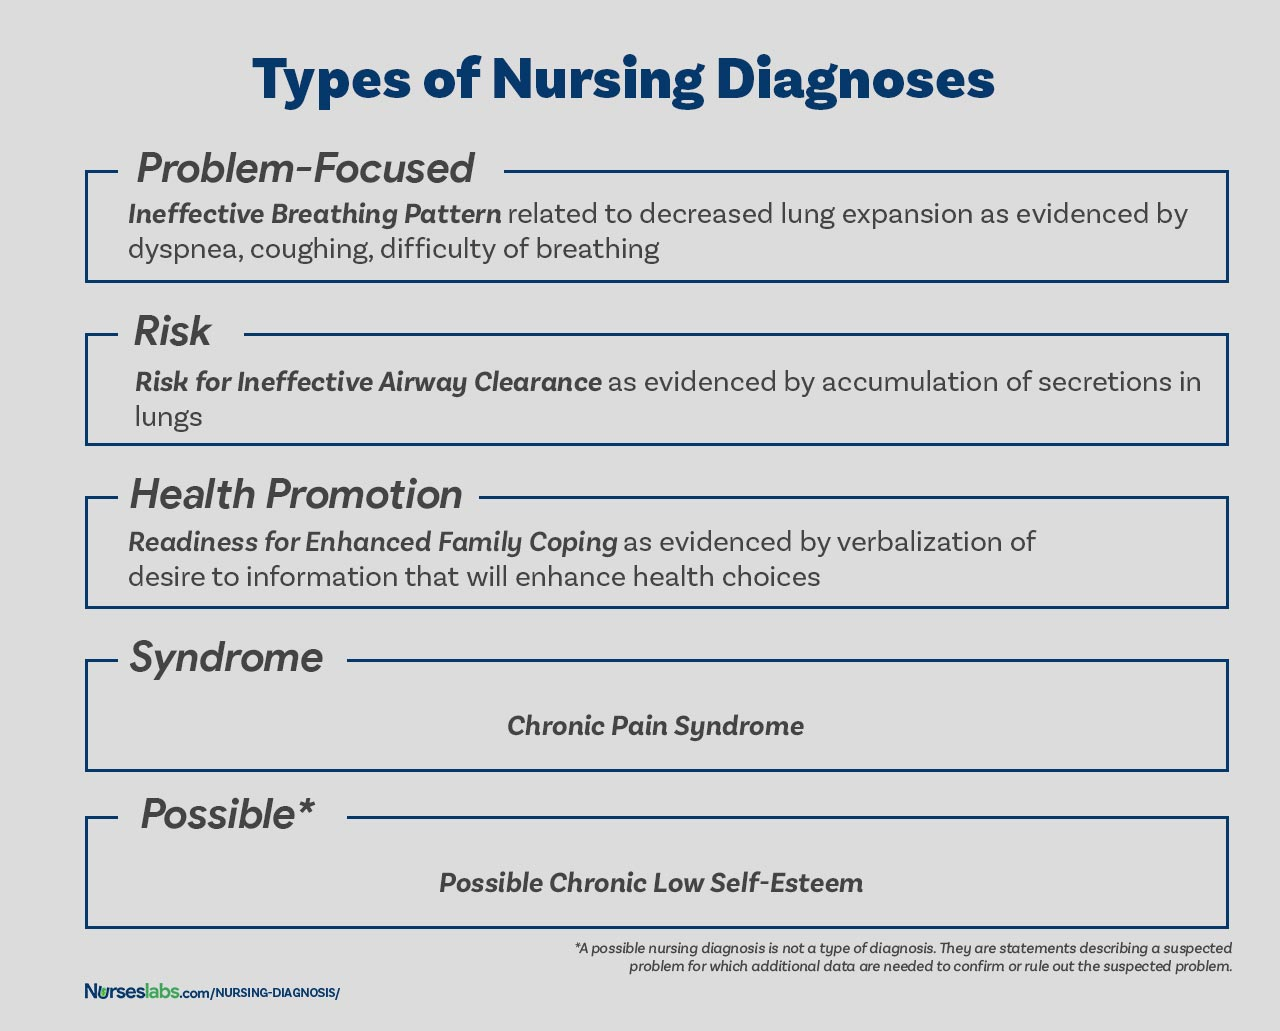 Four Types of Nursing Diagnoses